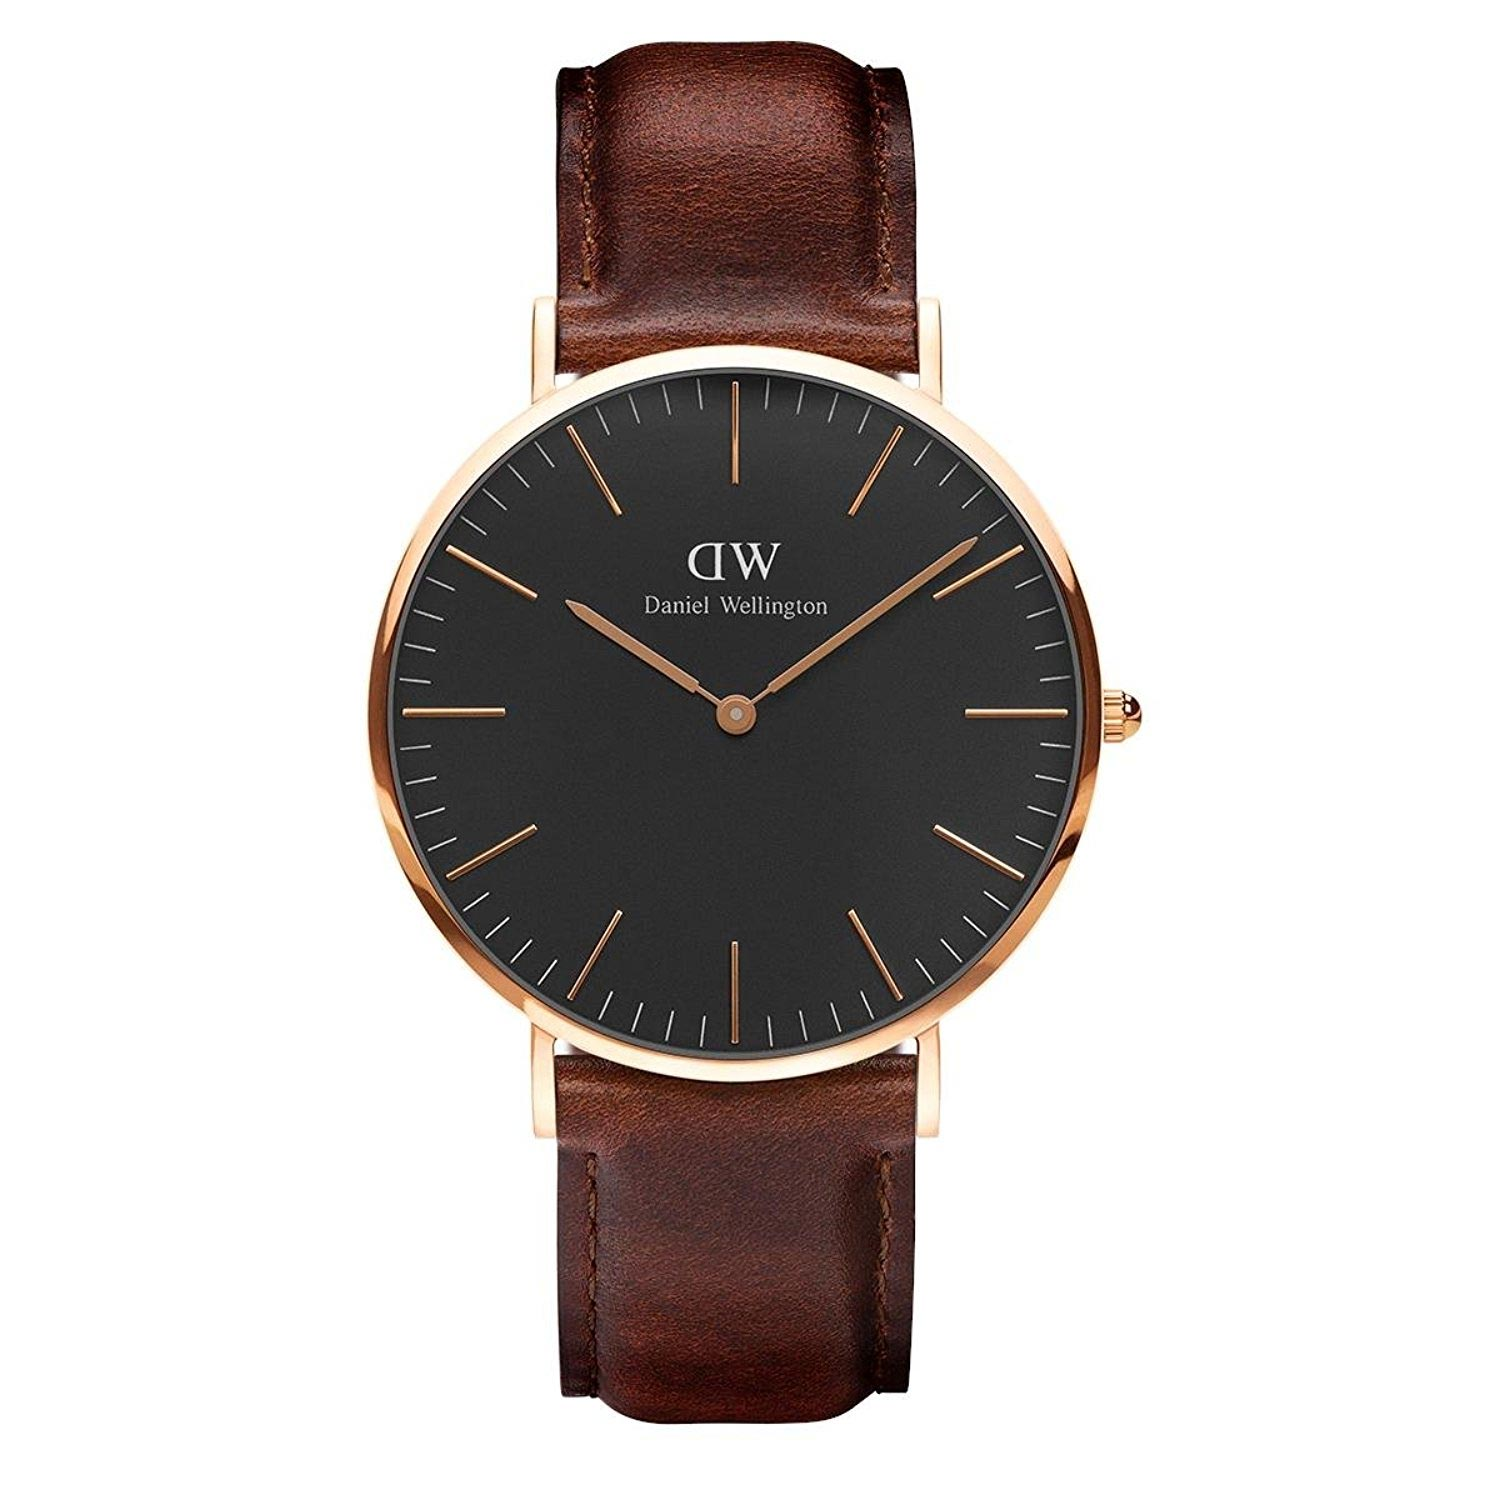 daniel wellington business uhr analoguhr f r m nner mit. Black Bedroom Furniture Sets. Home Design Ideas